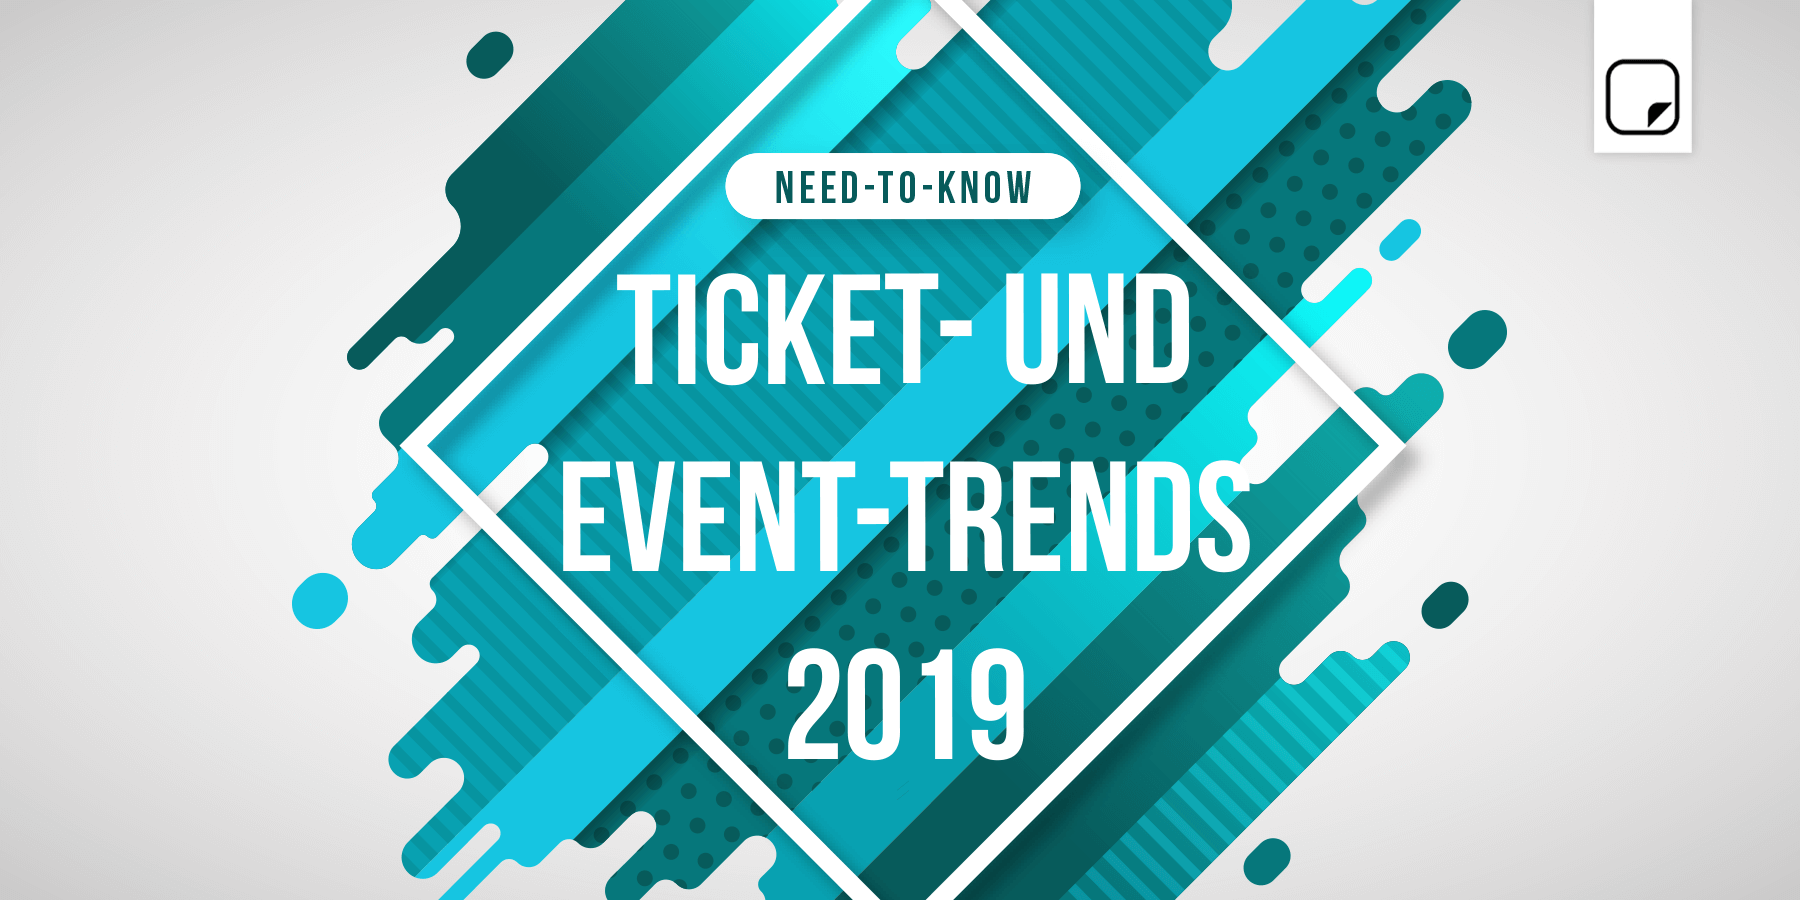 Need-to-know: Ticket- und Event-Trends 2019